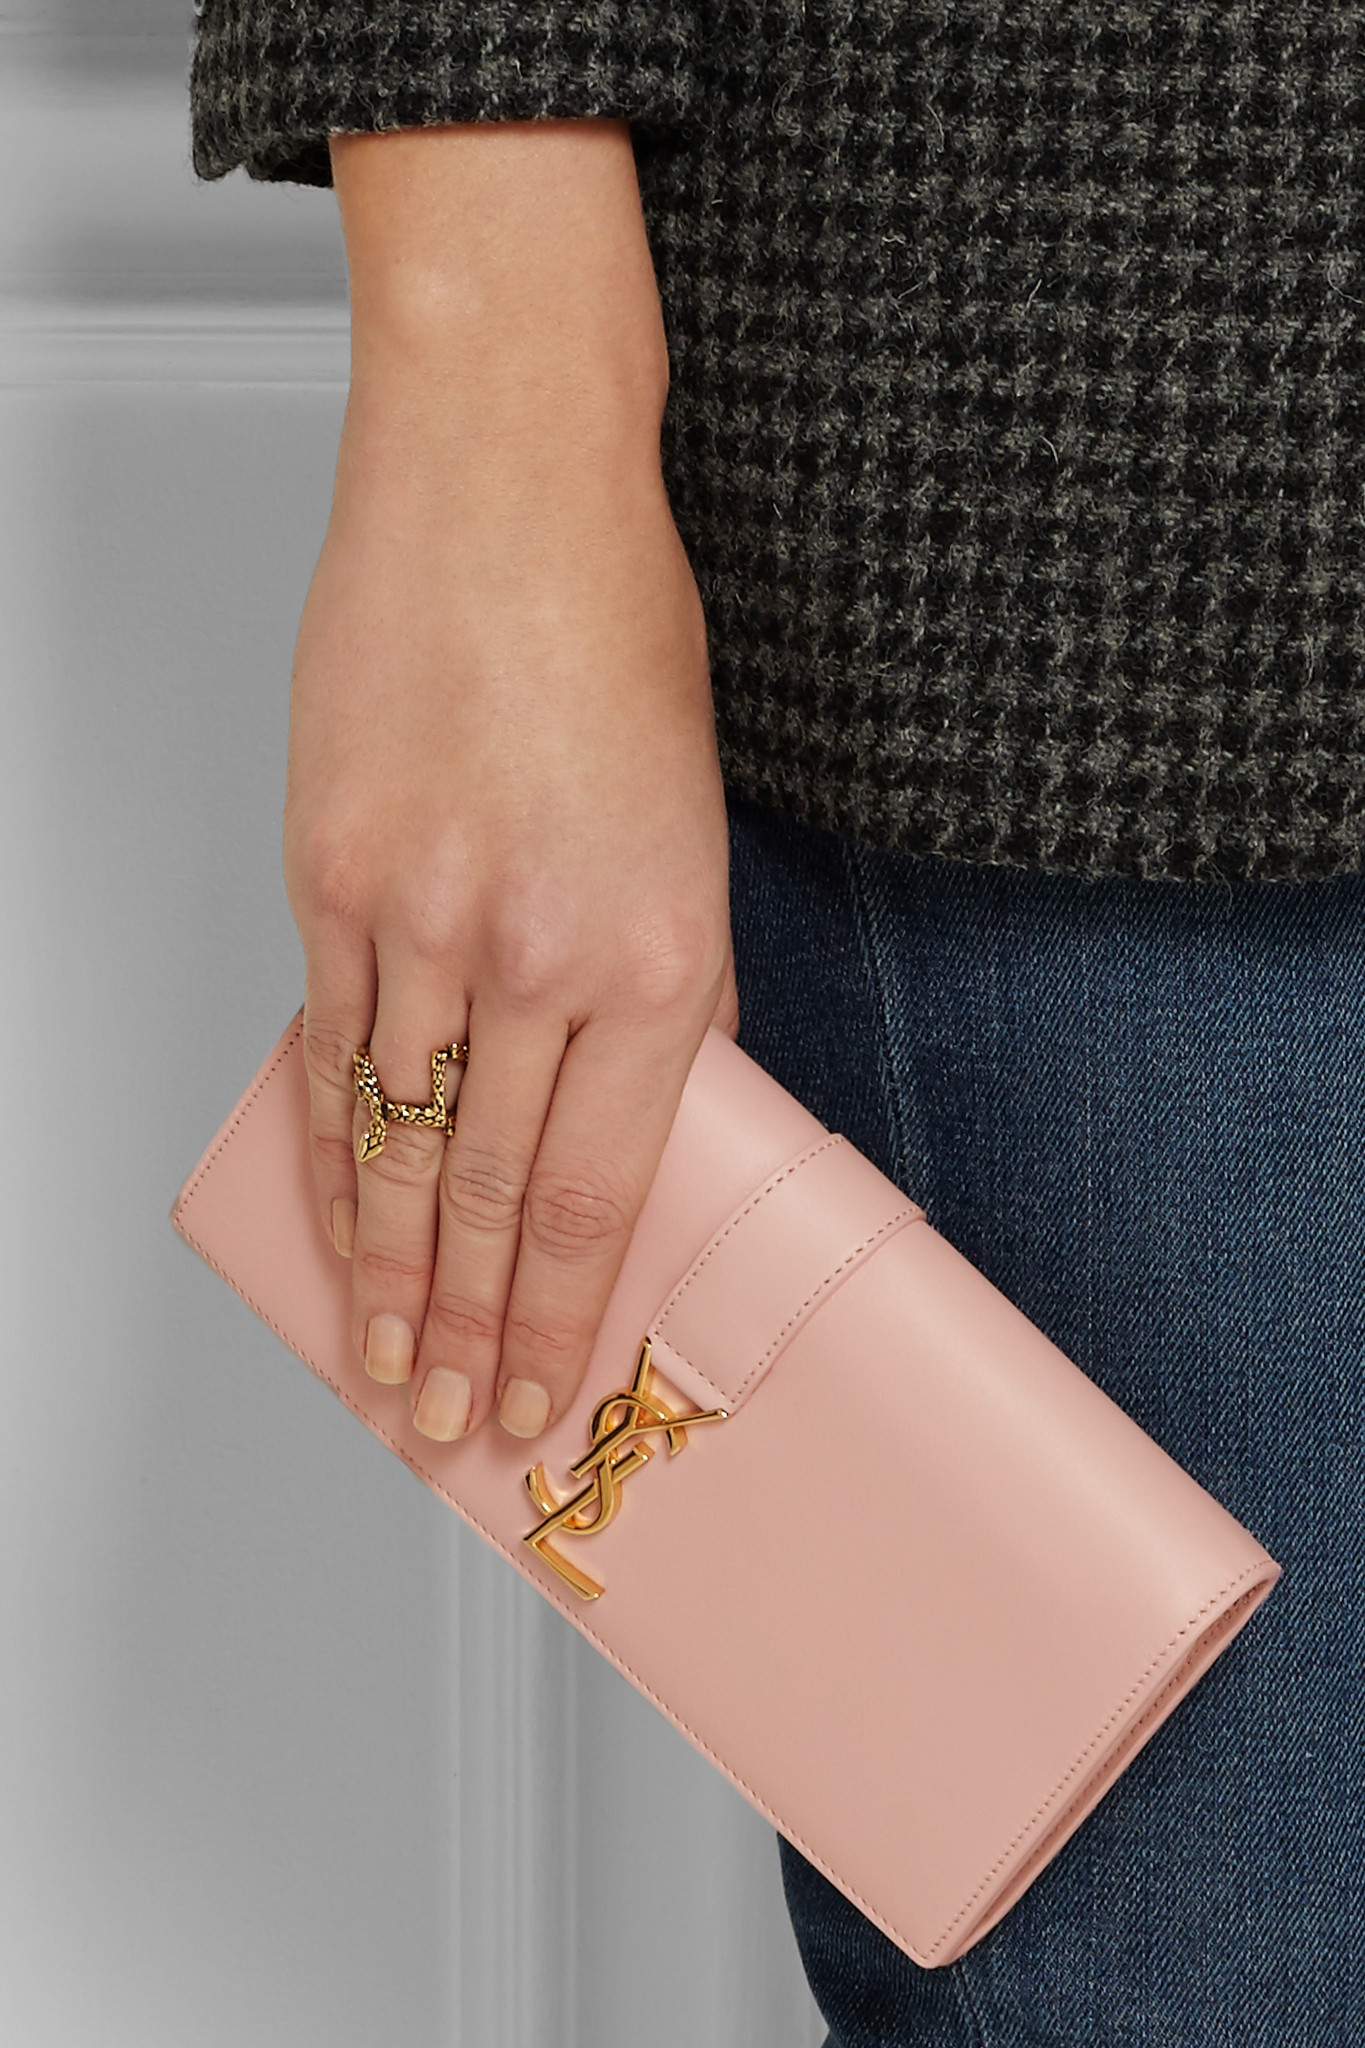 yves saint laurent wallets - Saint laurent Ysl Line Leather Wallet in Pink (Blush) | Lyst